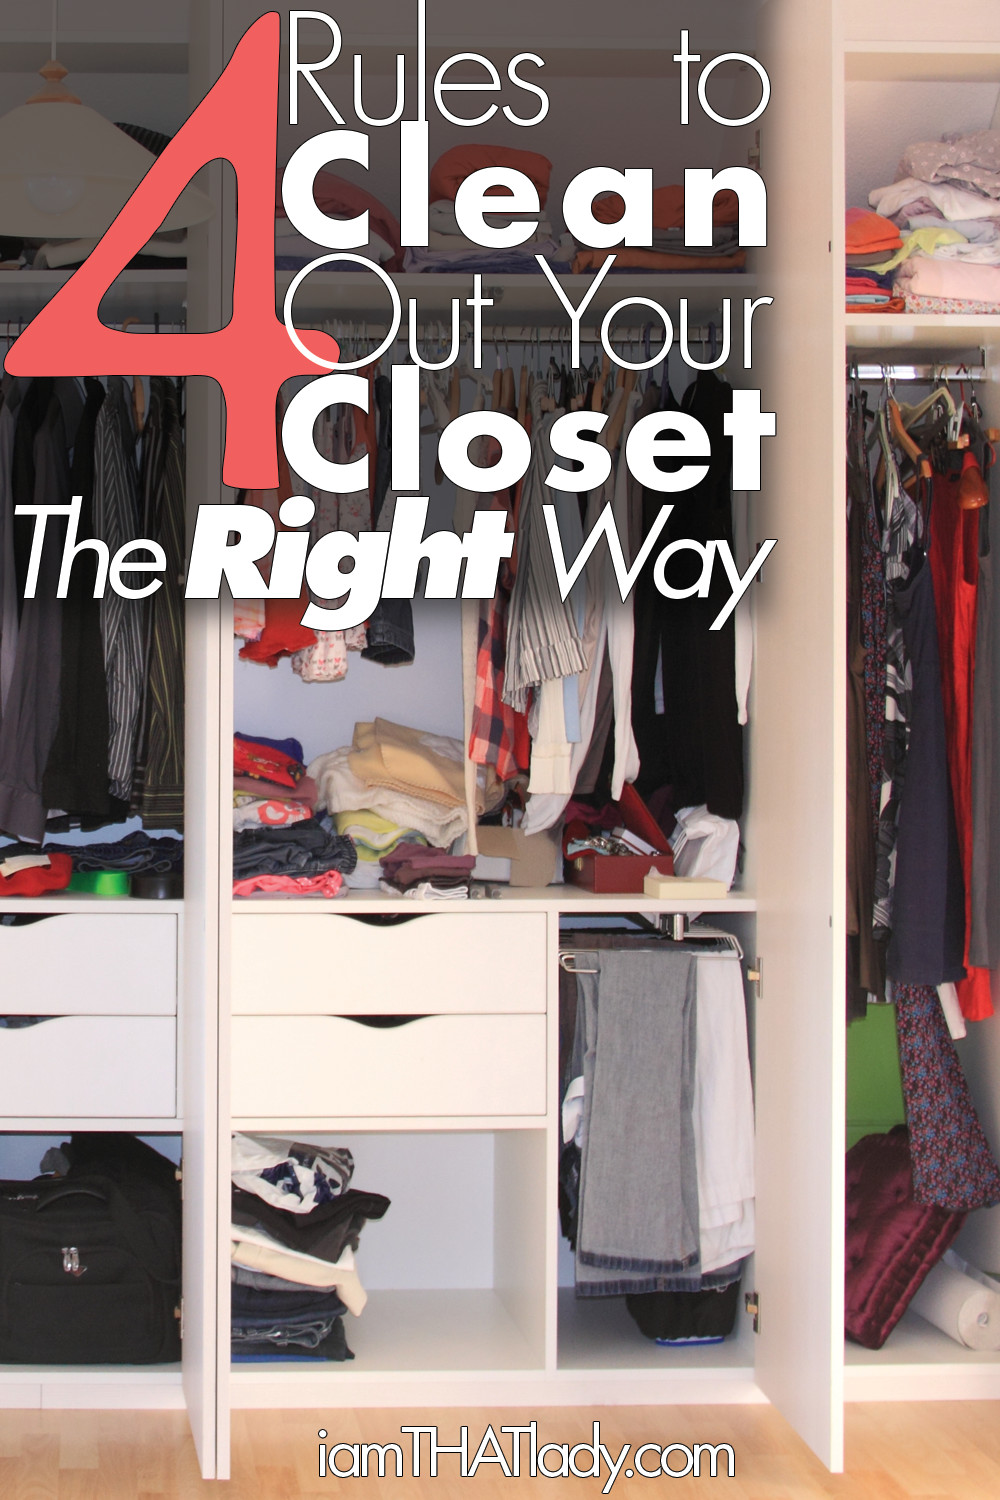 How To Clean Your Closet 4 rules to clean out your closet the right way - lauren greutman